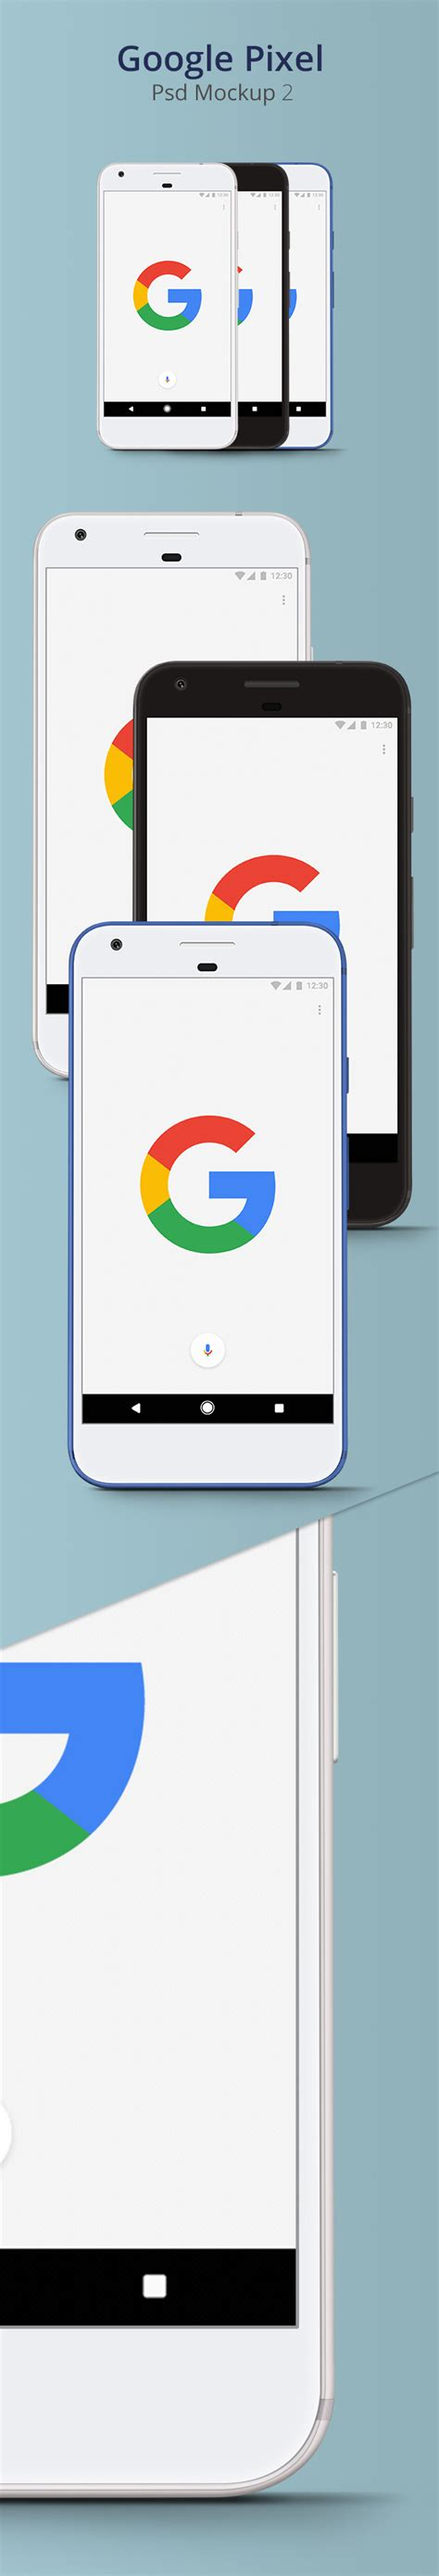 Download psd mockups to better showcase and present your work in photorealistic way. Google Pixel Psd Mockup 2 - CreativeCrunk